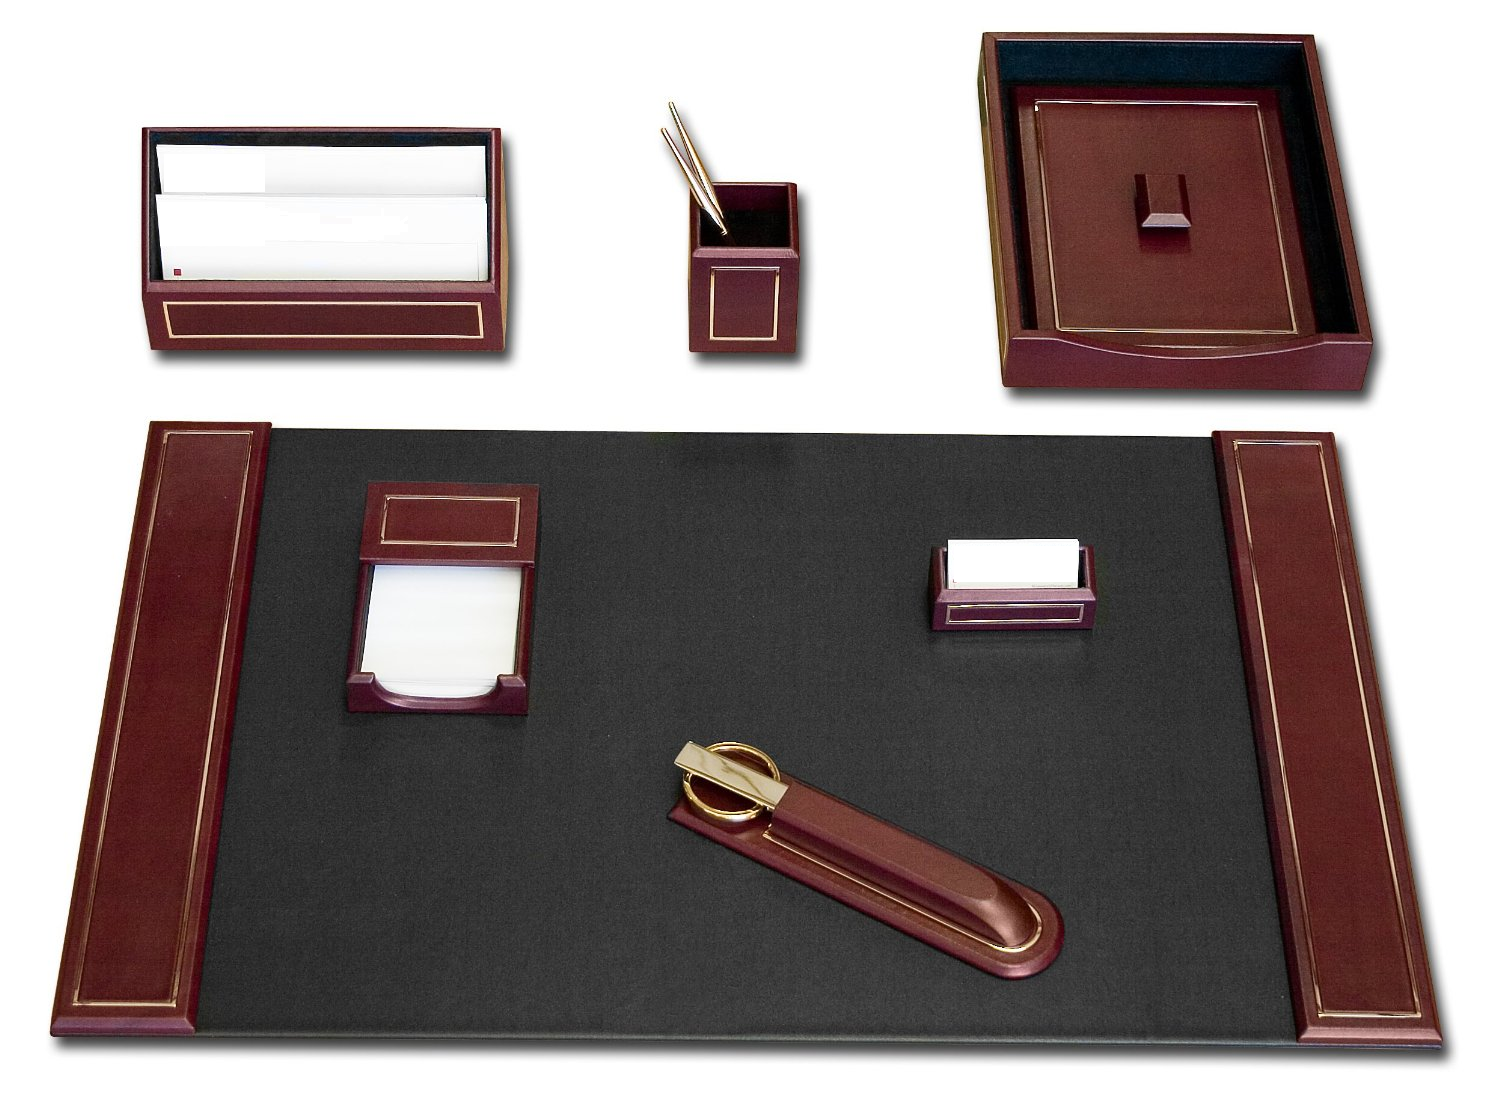 Burgundy Leather 24kt Gold-Tooled 7-Piece Desk Set  WAUCUSTD5604